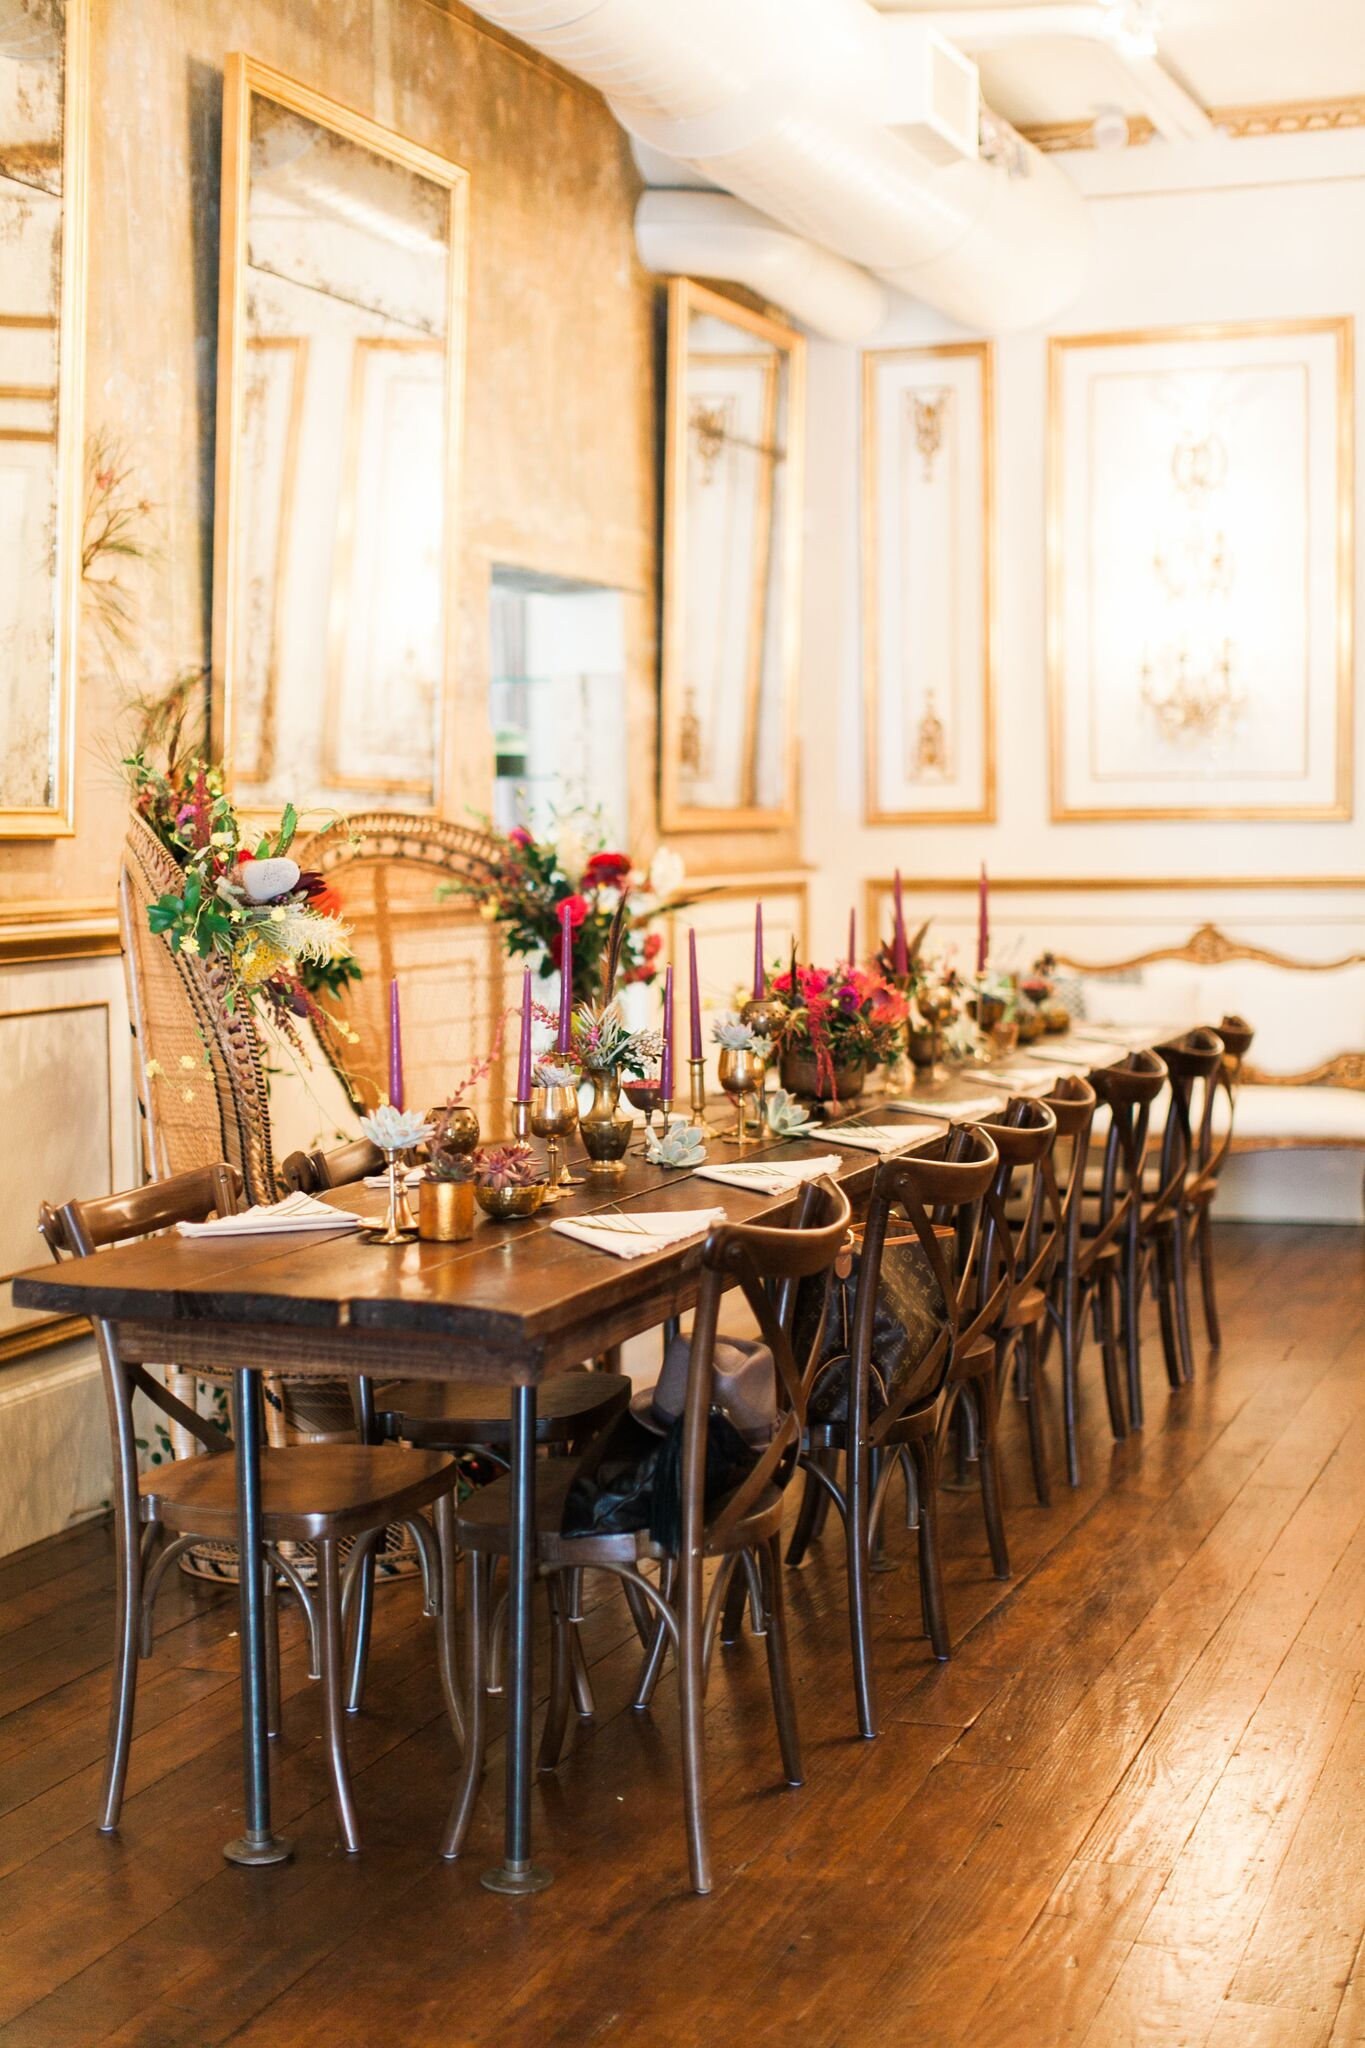 Furnishing Rentals For Weddings And Events In Texas - Birch